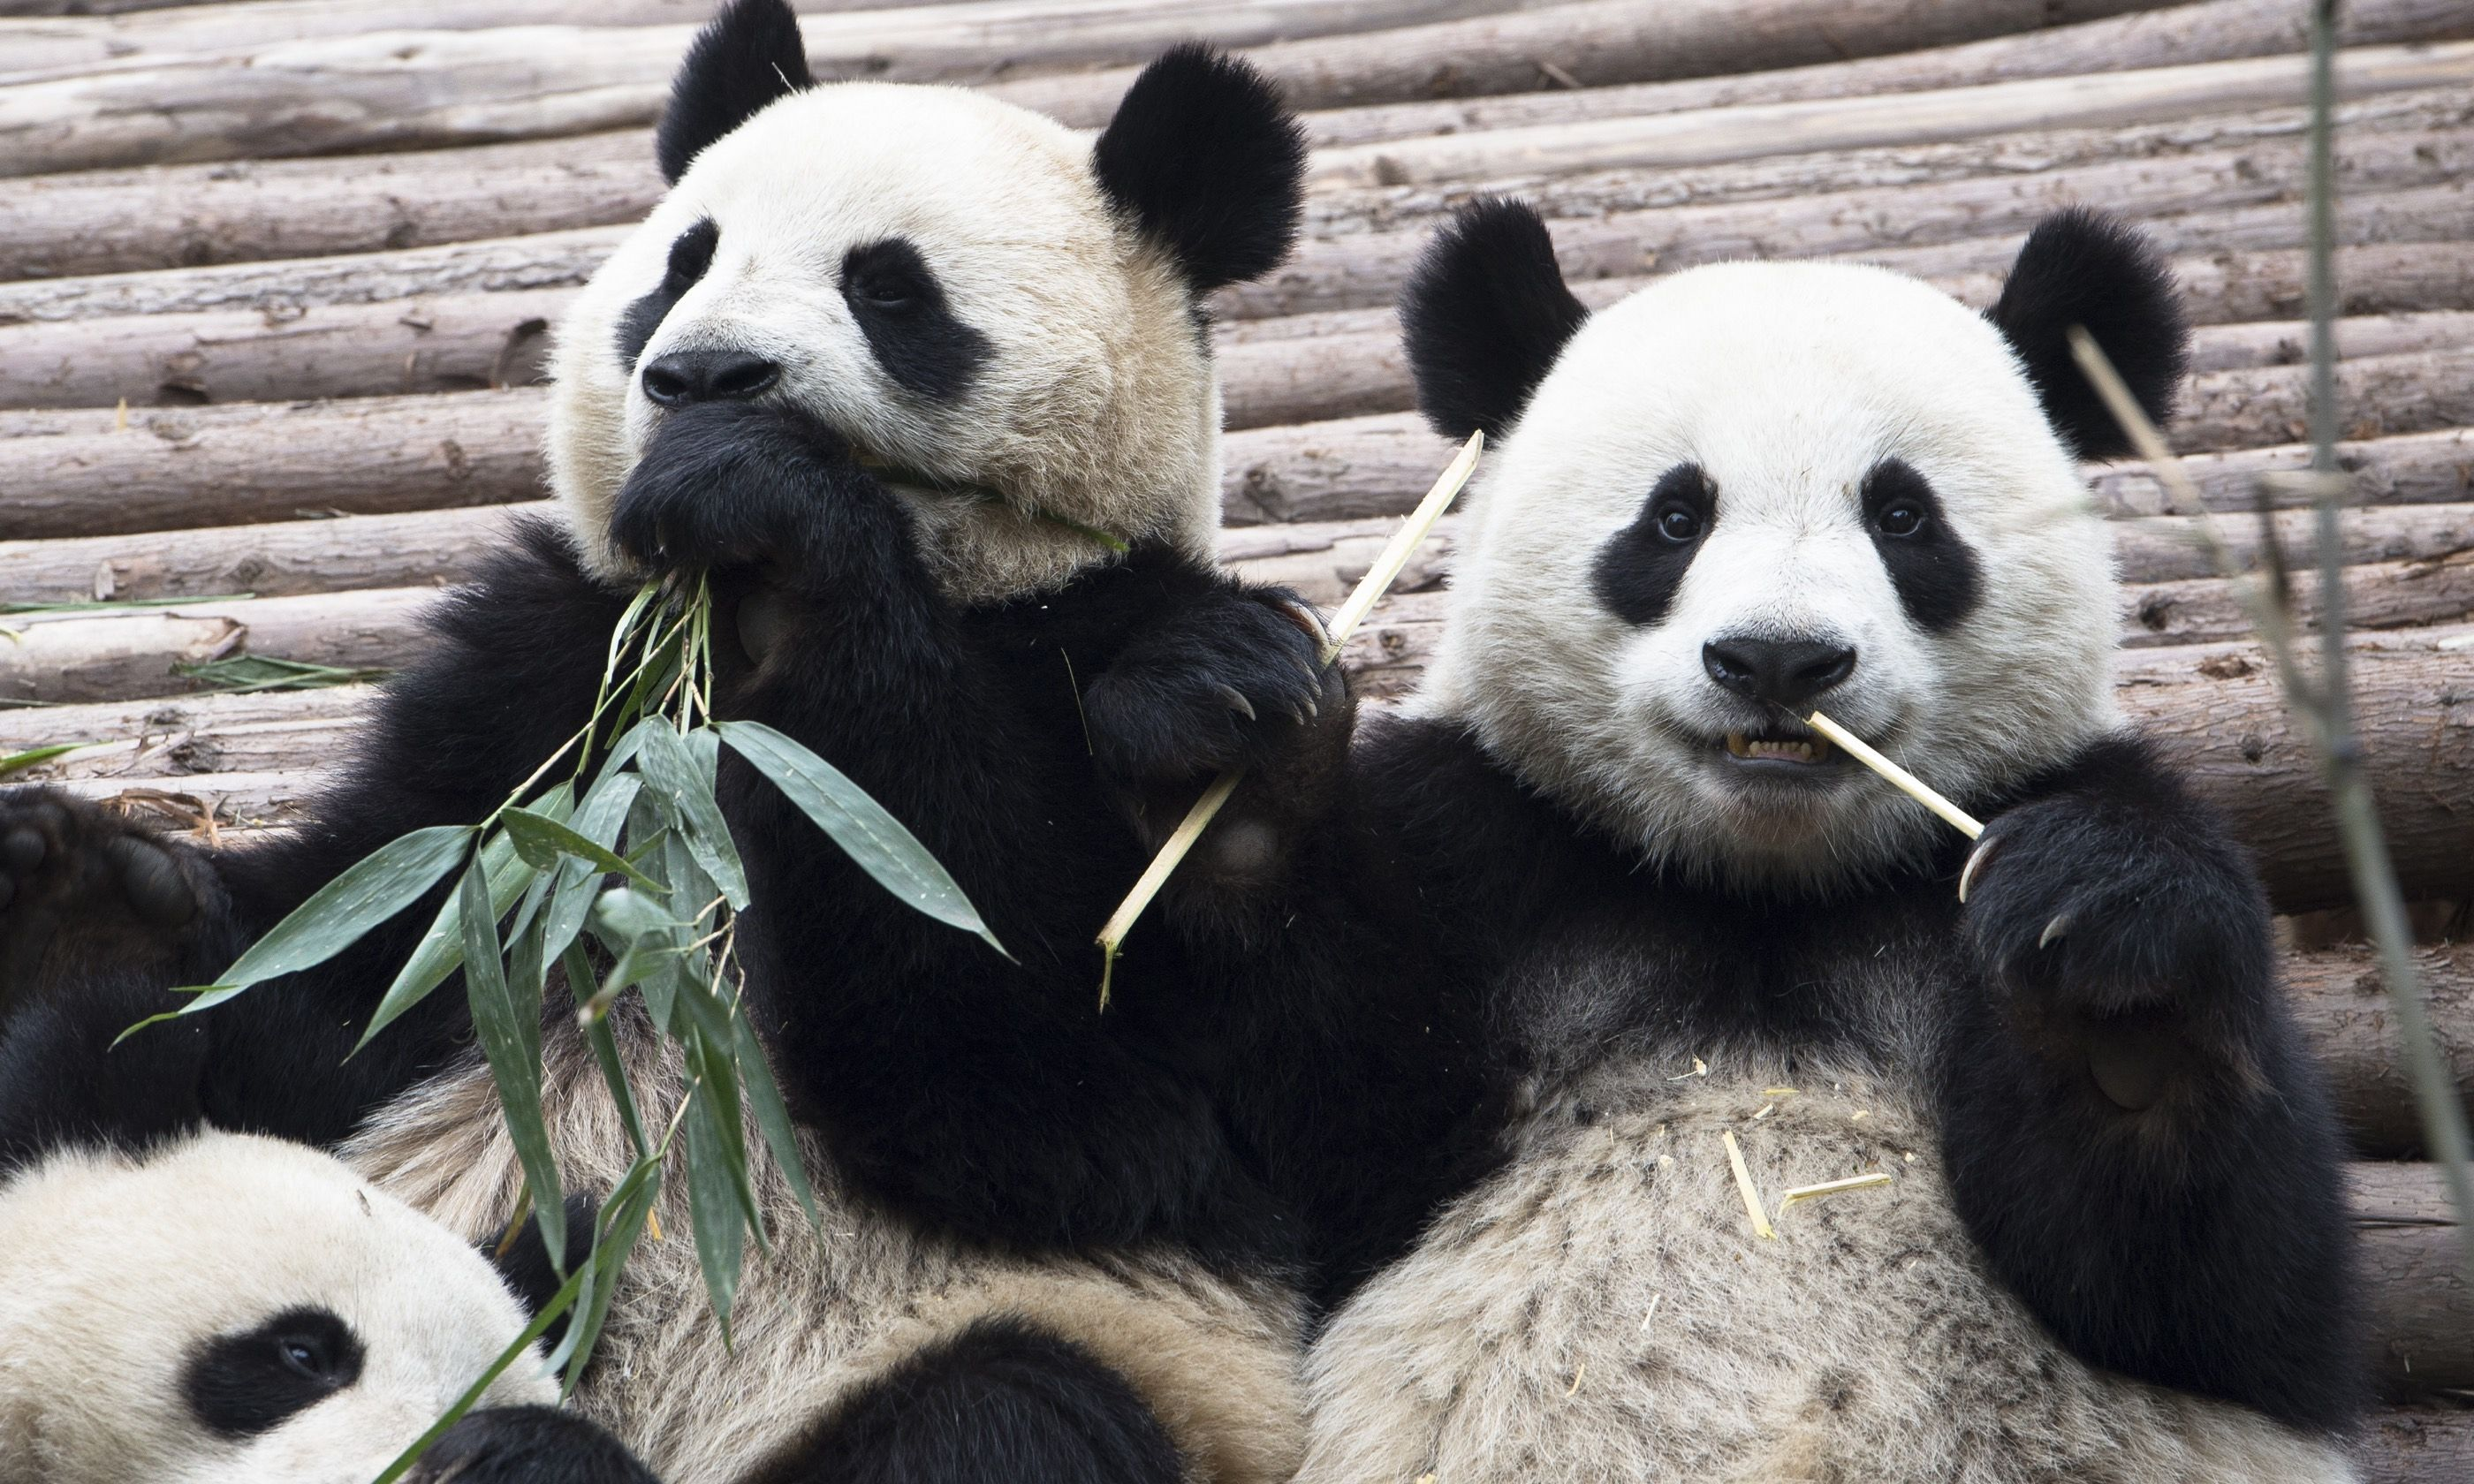 Giant pandas eating bamboo (Dreamstime)